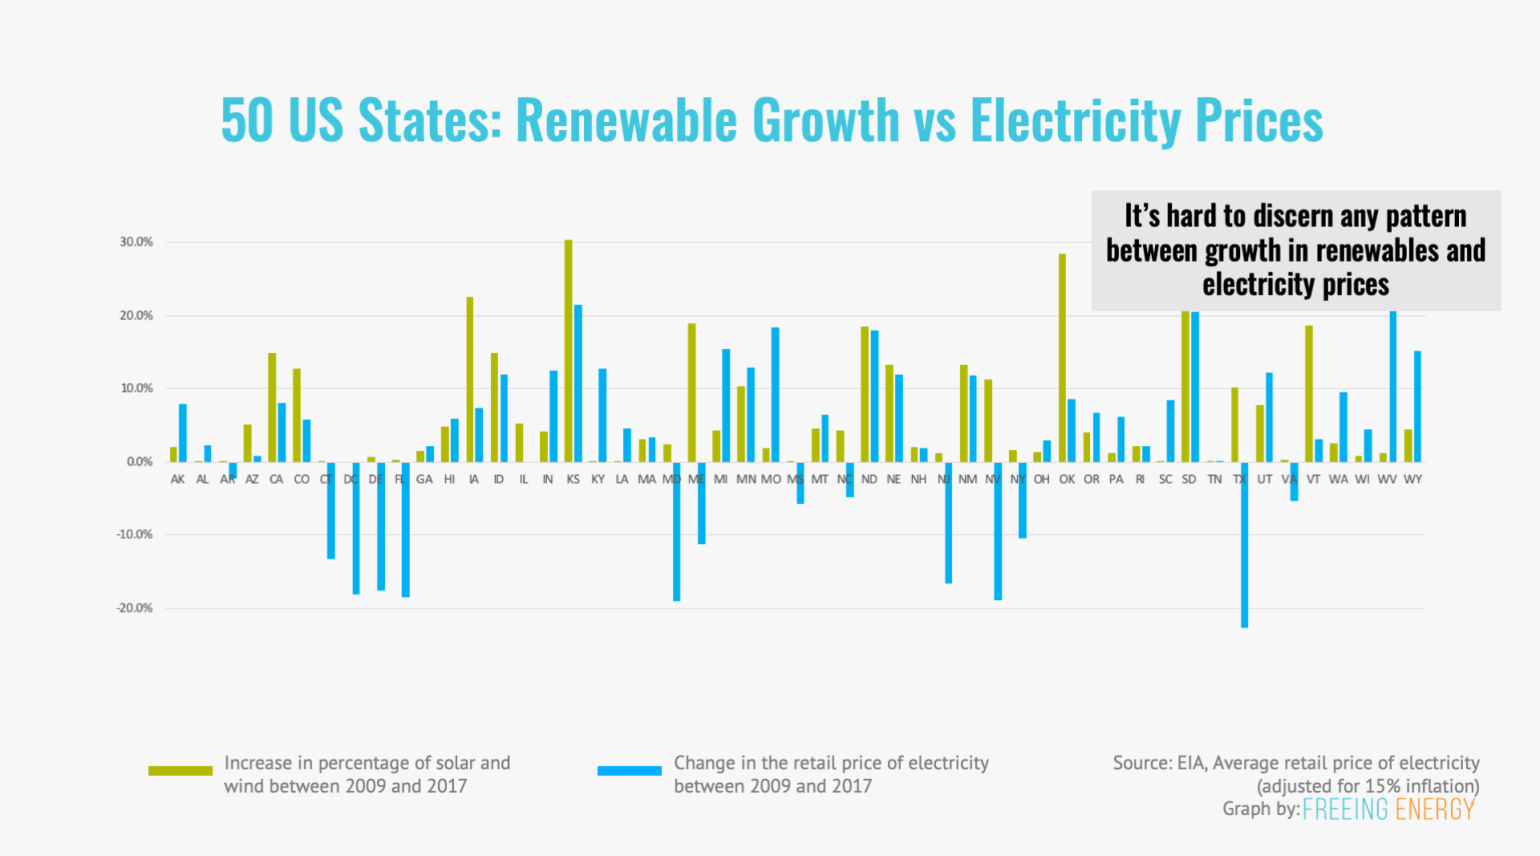 50 US States - comparing renewable growth vs electricity prices - it's nearly impossible to discern a pattern showing that renewables drove up prices